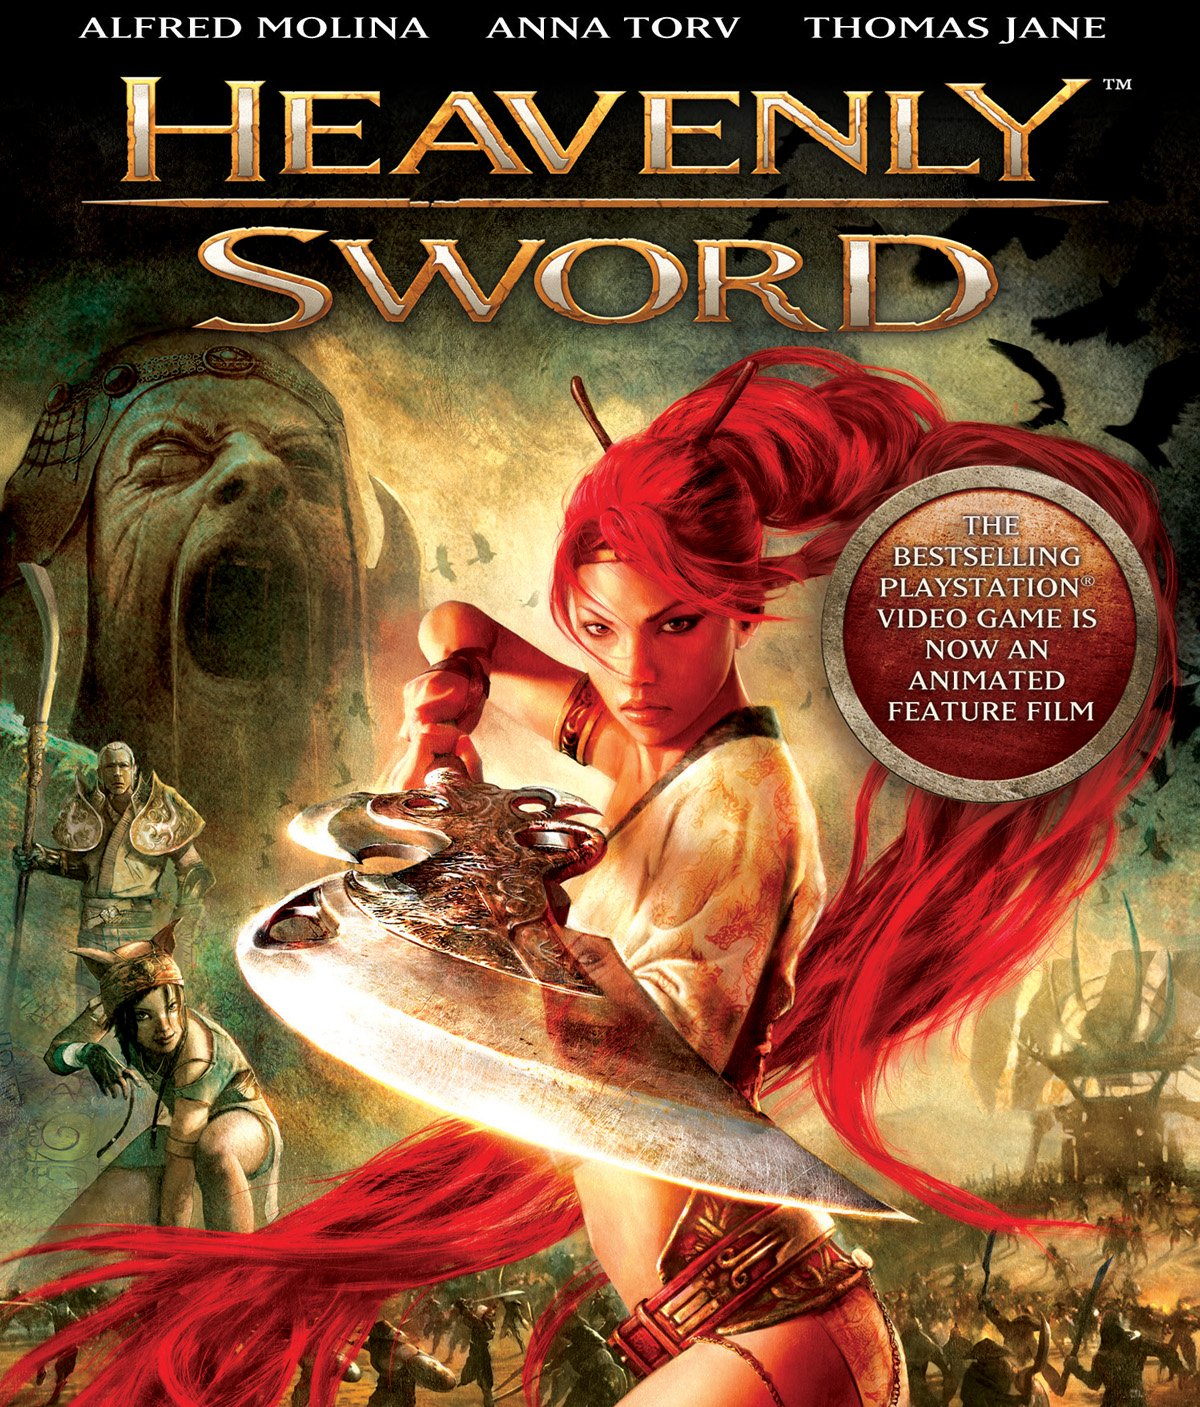 Amazon Com Heavenly Sword Blu Ray Anna Torv Thomas Jane